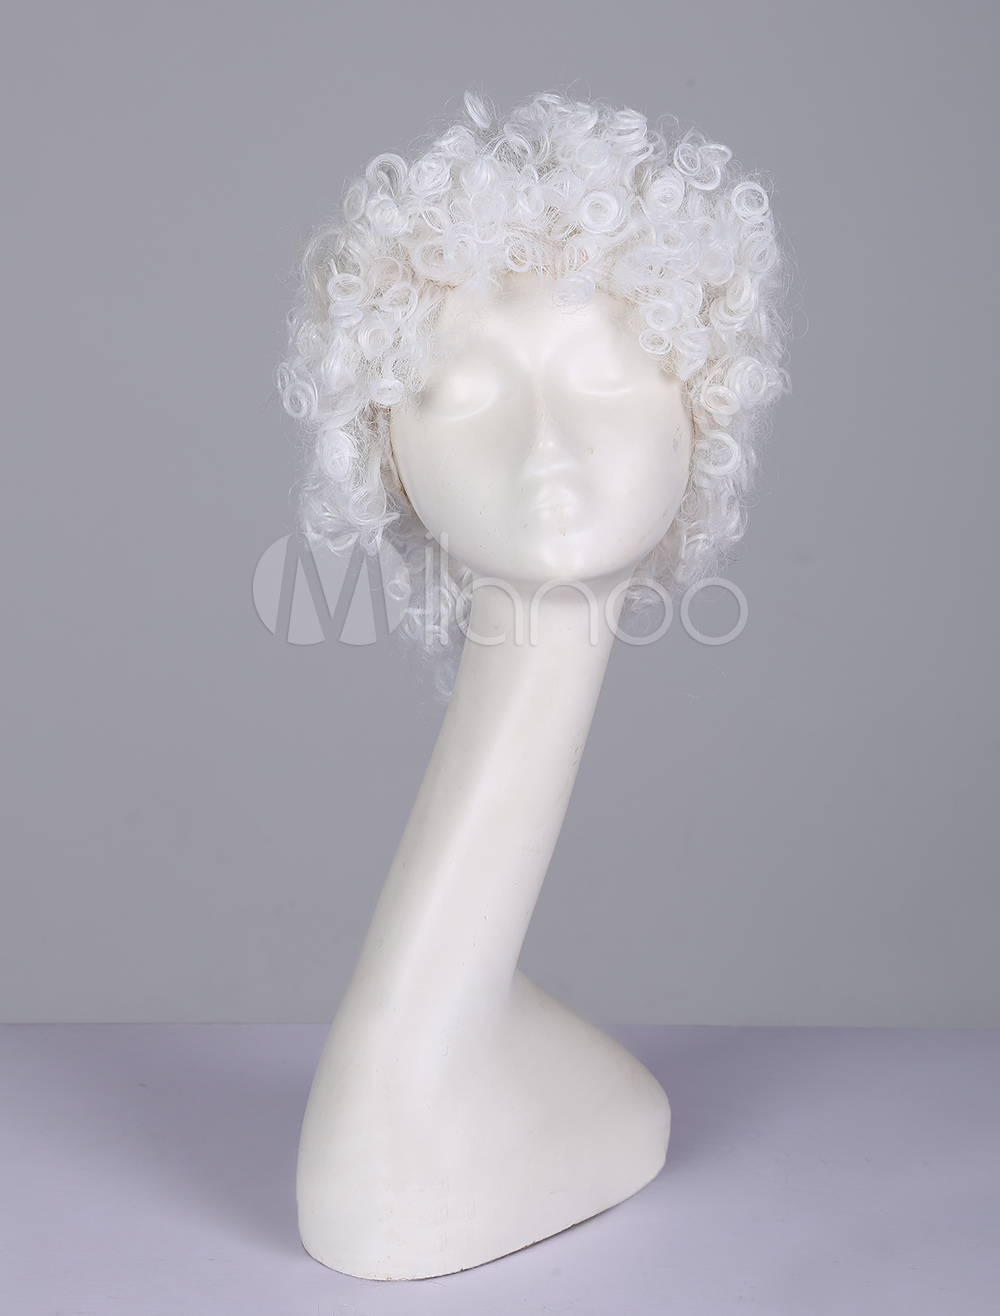 White Old Man Cosplay Hair Wigs Women Curly Short Wigs For Party ... b63ad60b8b